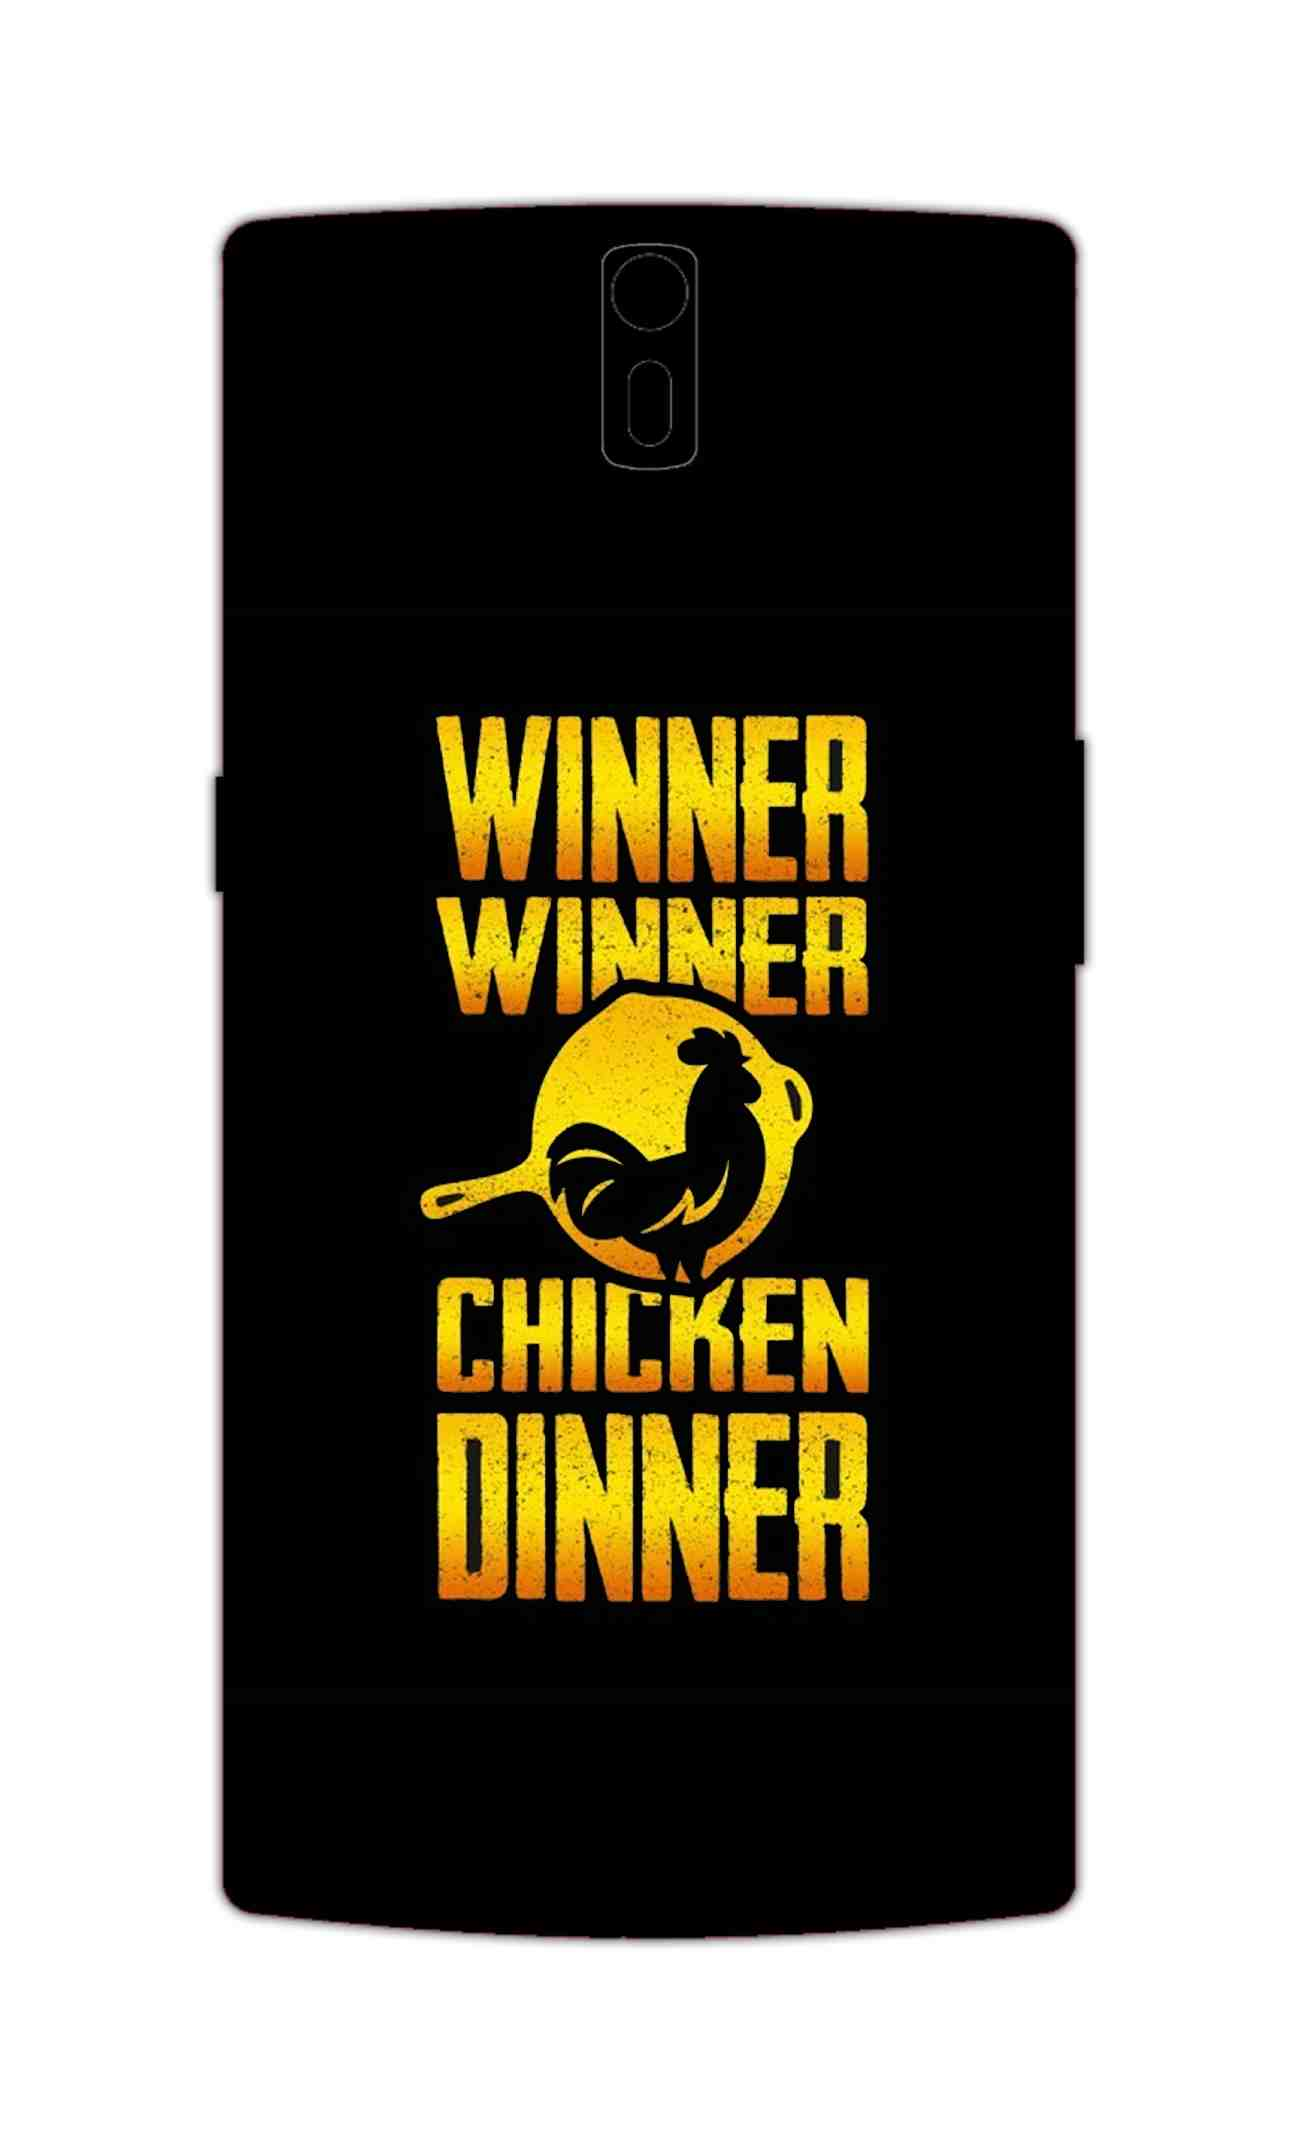 Chicken Dinner Pan For Winner Typography OnePlus 1 Mobile Cover Case - MADANYU